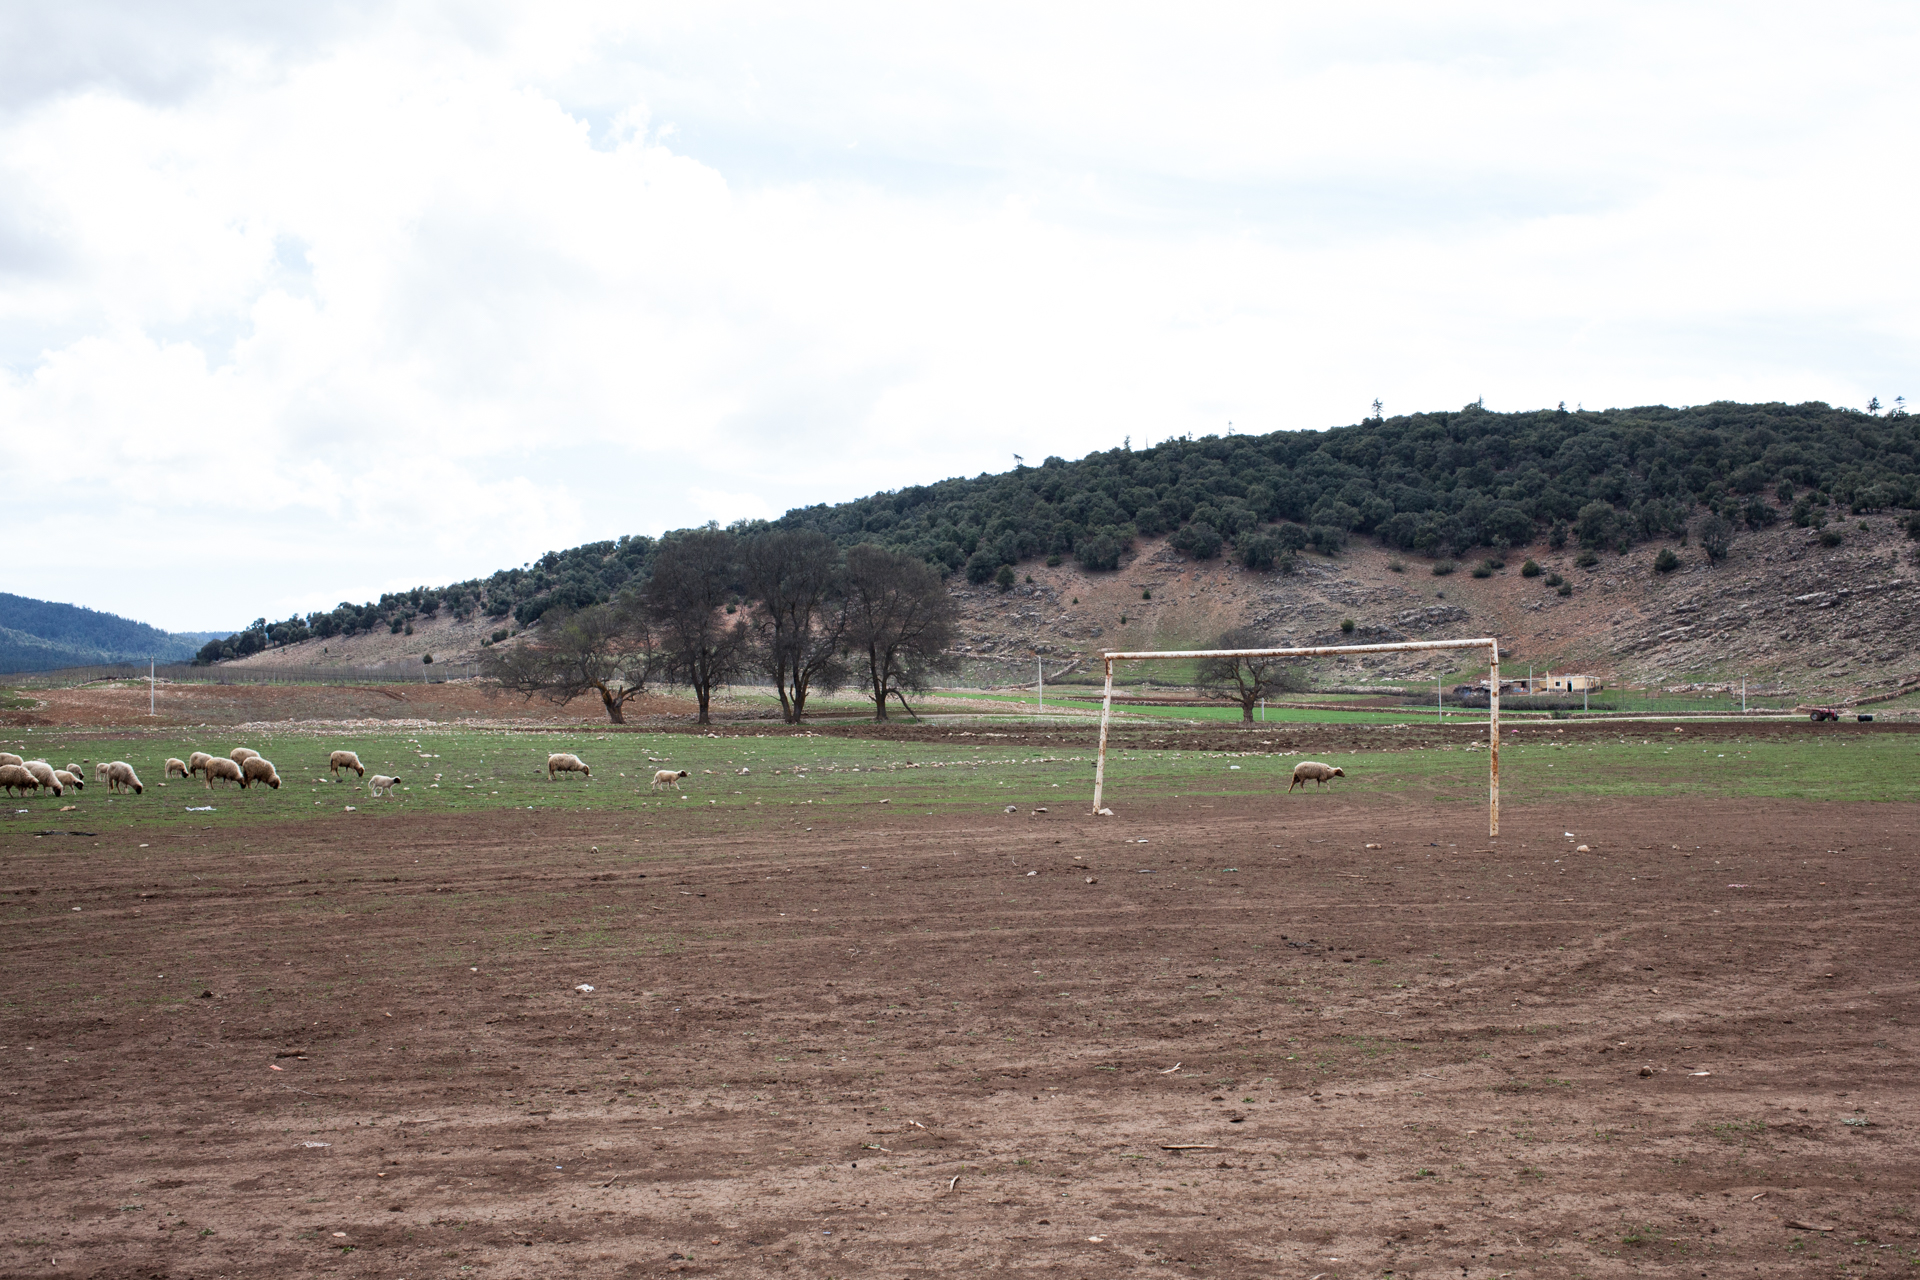 A football ground for sheeps